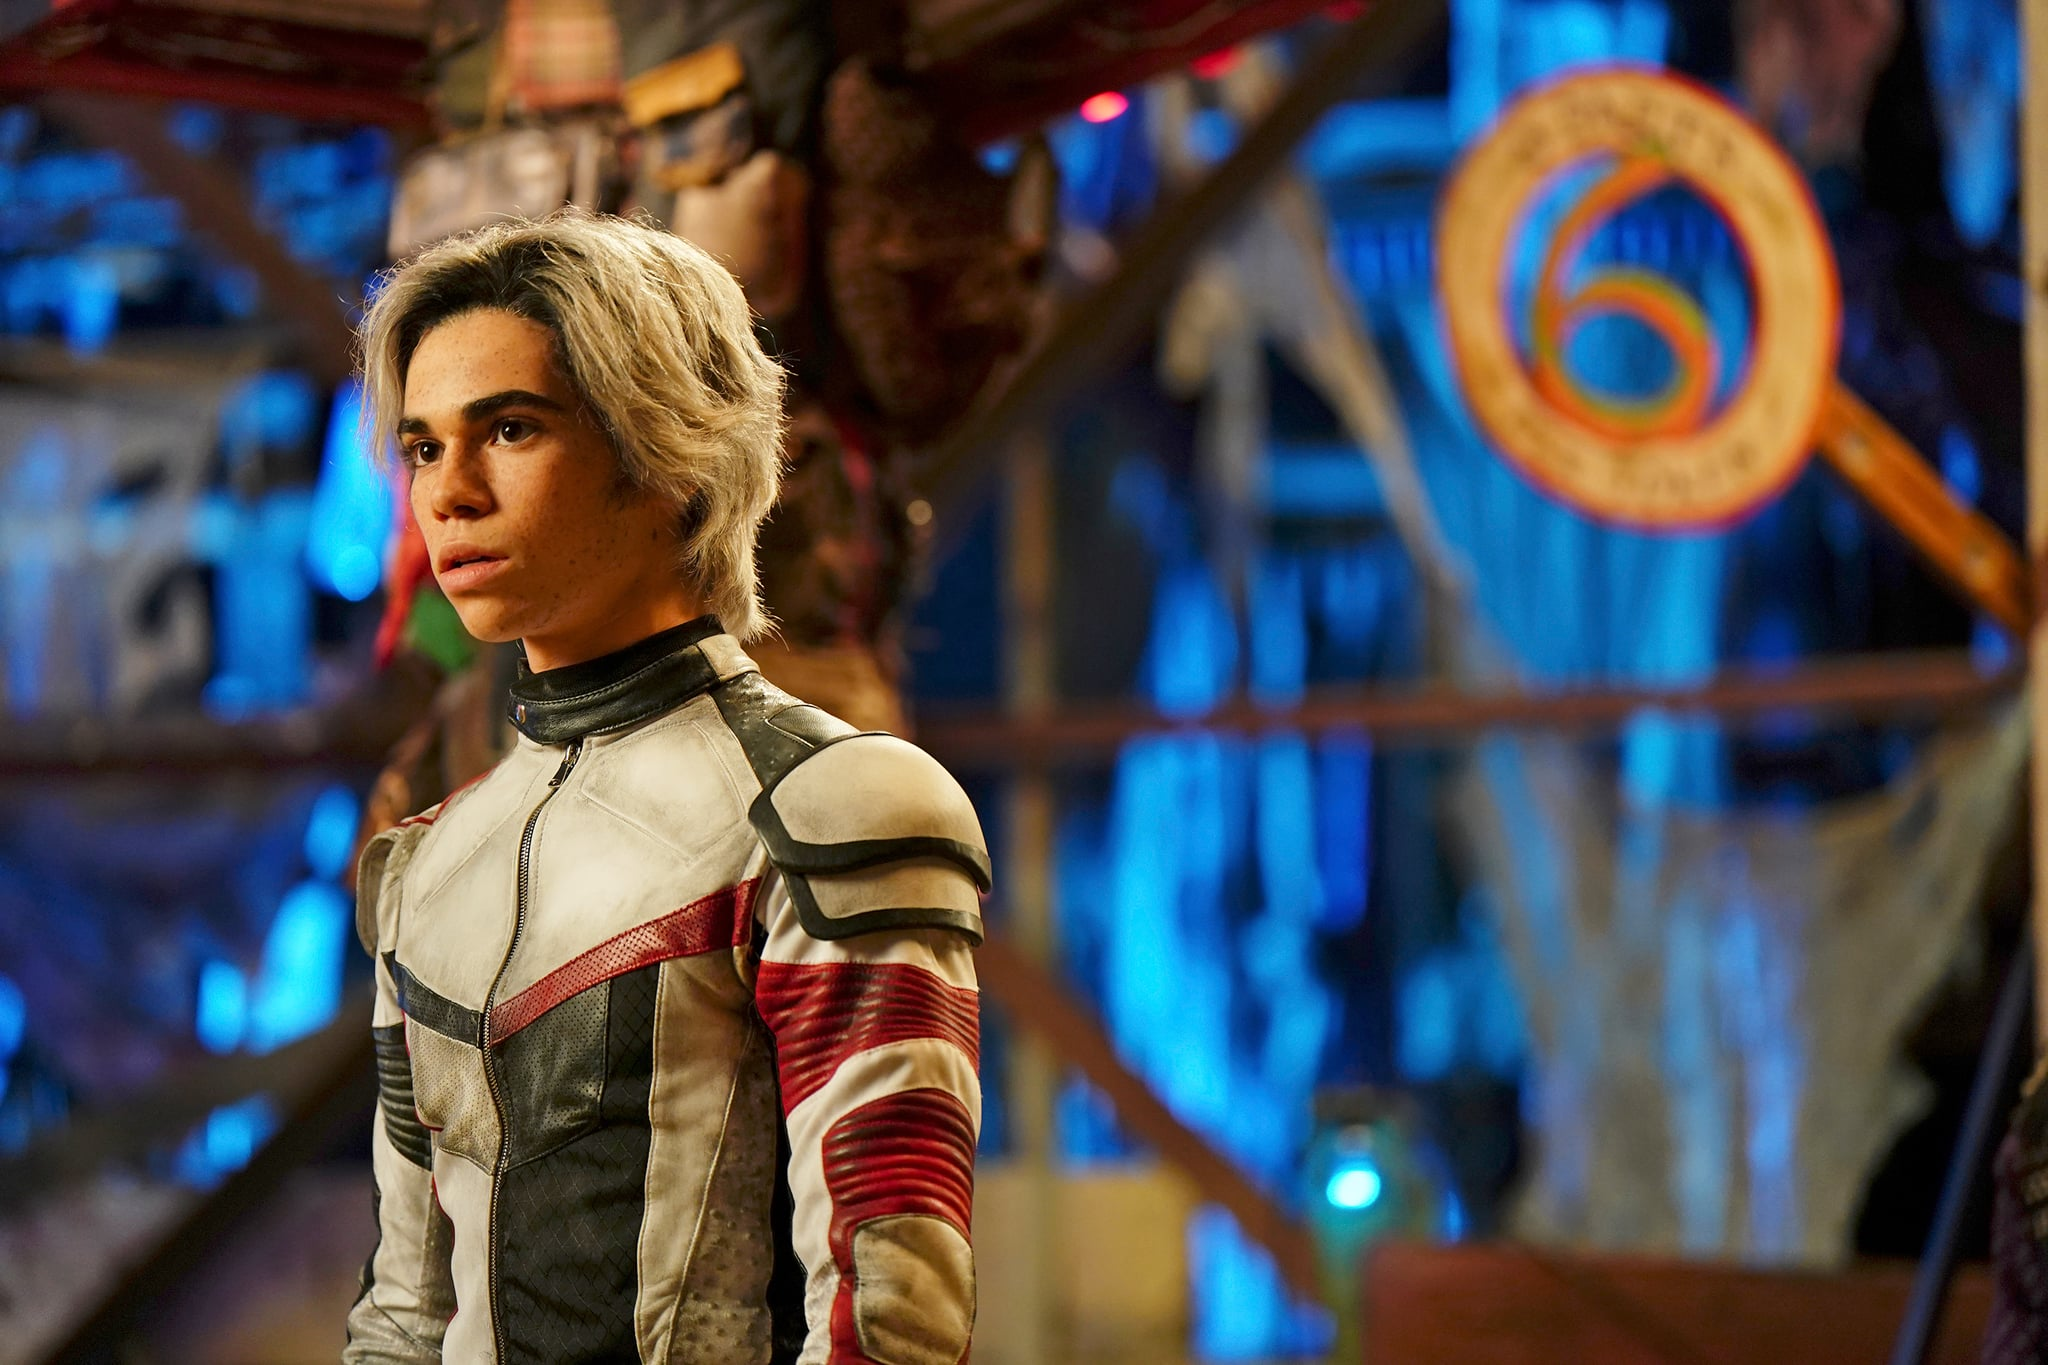 DESCENDANTS 3, Cameron Boyce, tv movie, (aired August 2, 2019), ph: David Bukach / Disney Channel / courtesy Everett Collection